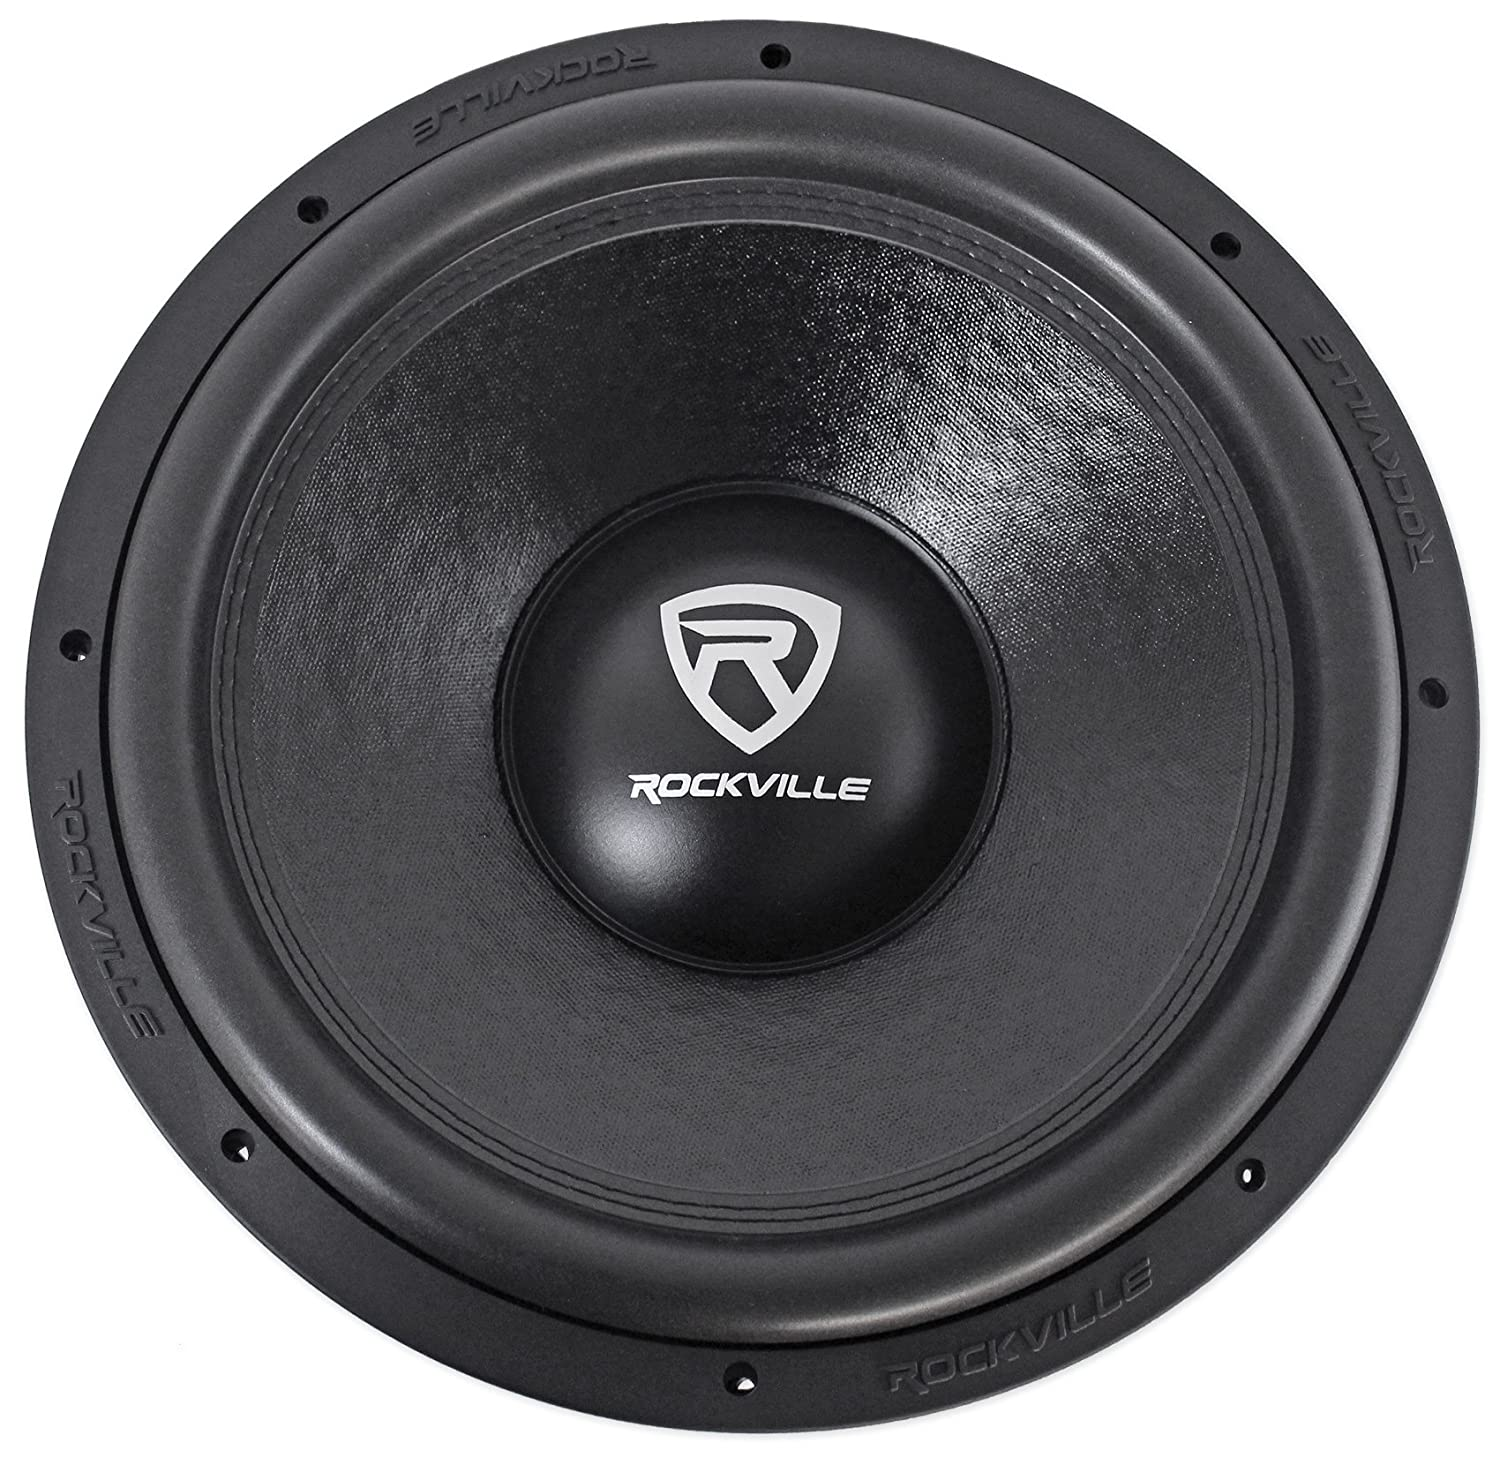 "Rockville W15 K6 D2 V2 15"" 4000w Car Audio Subwoofer Dual 2 Ohm Sub Cea Compliant by Rockville"